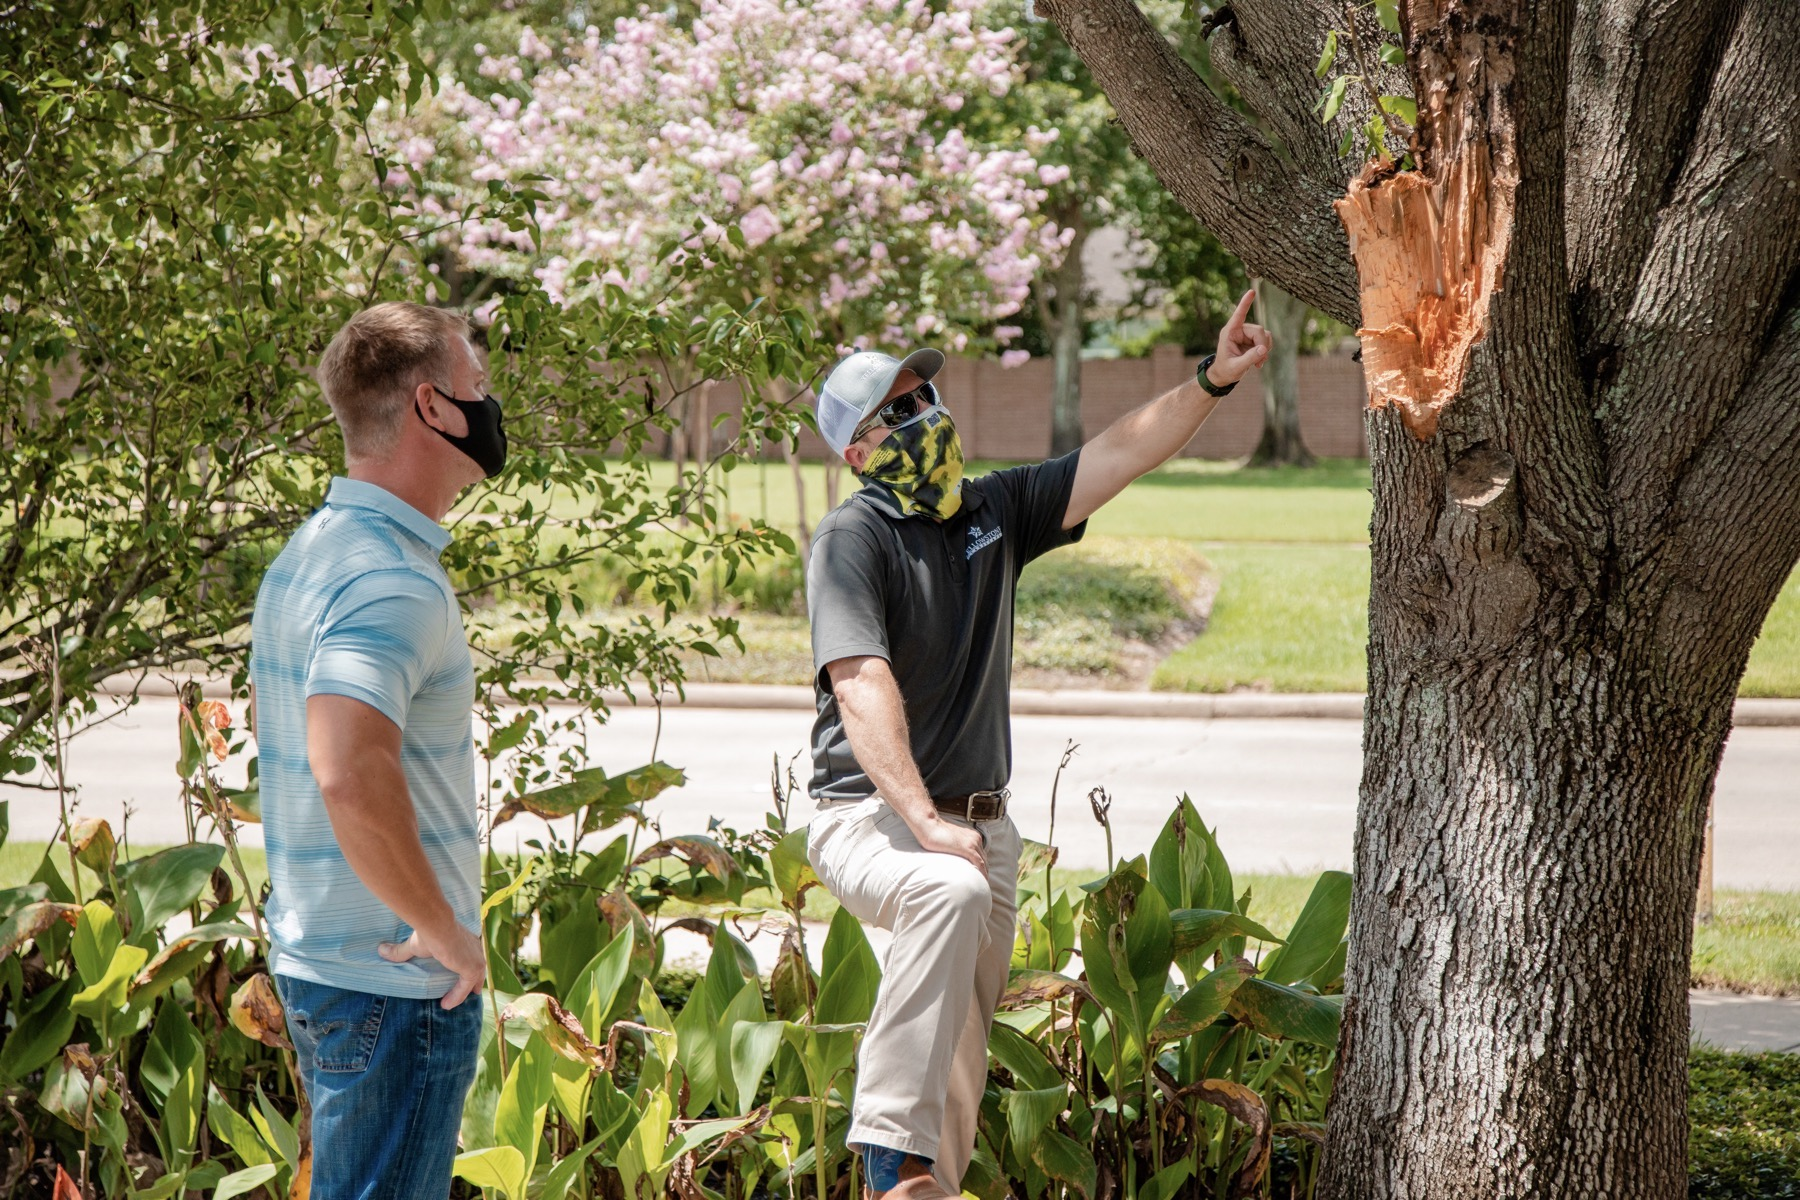 Commercial tree service inspection with a customer